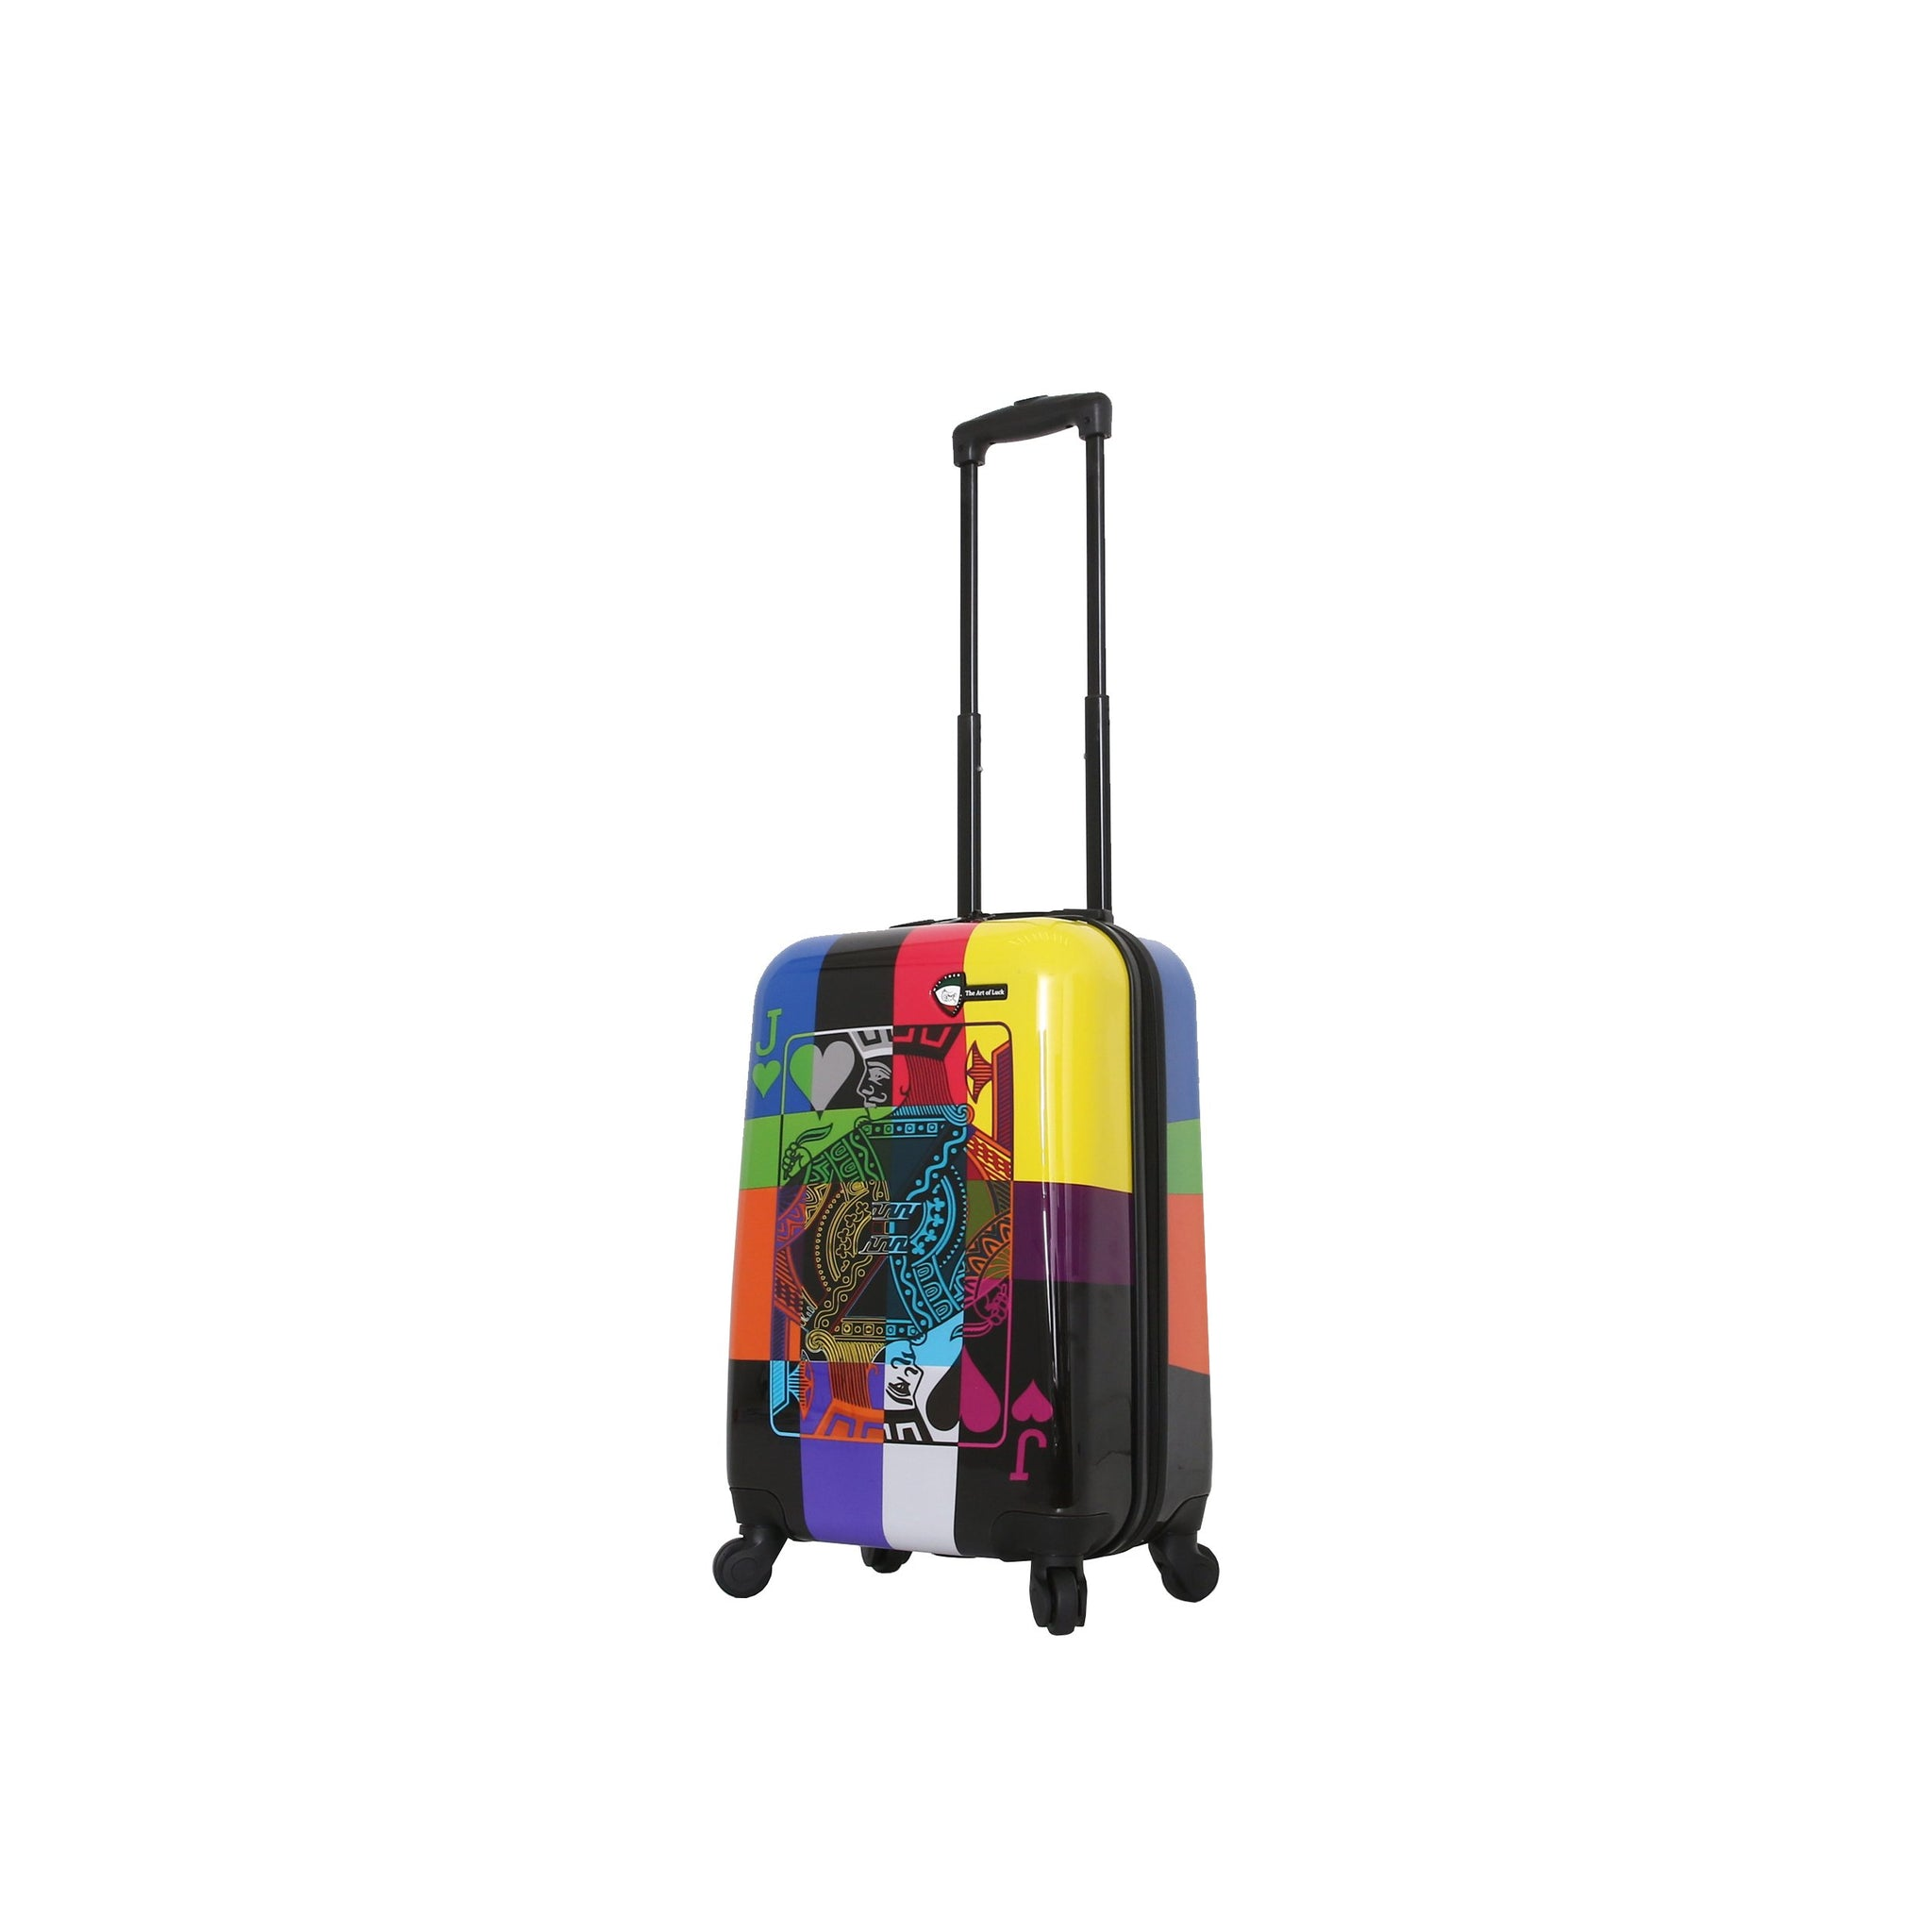 "The Art of Luck 20"" Carry On Luggage"